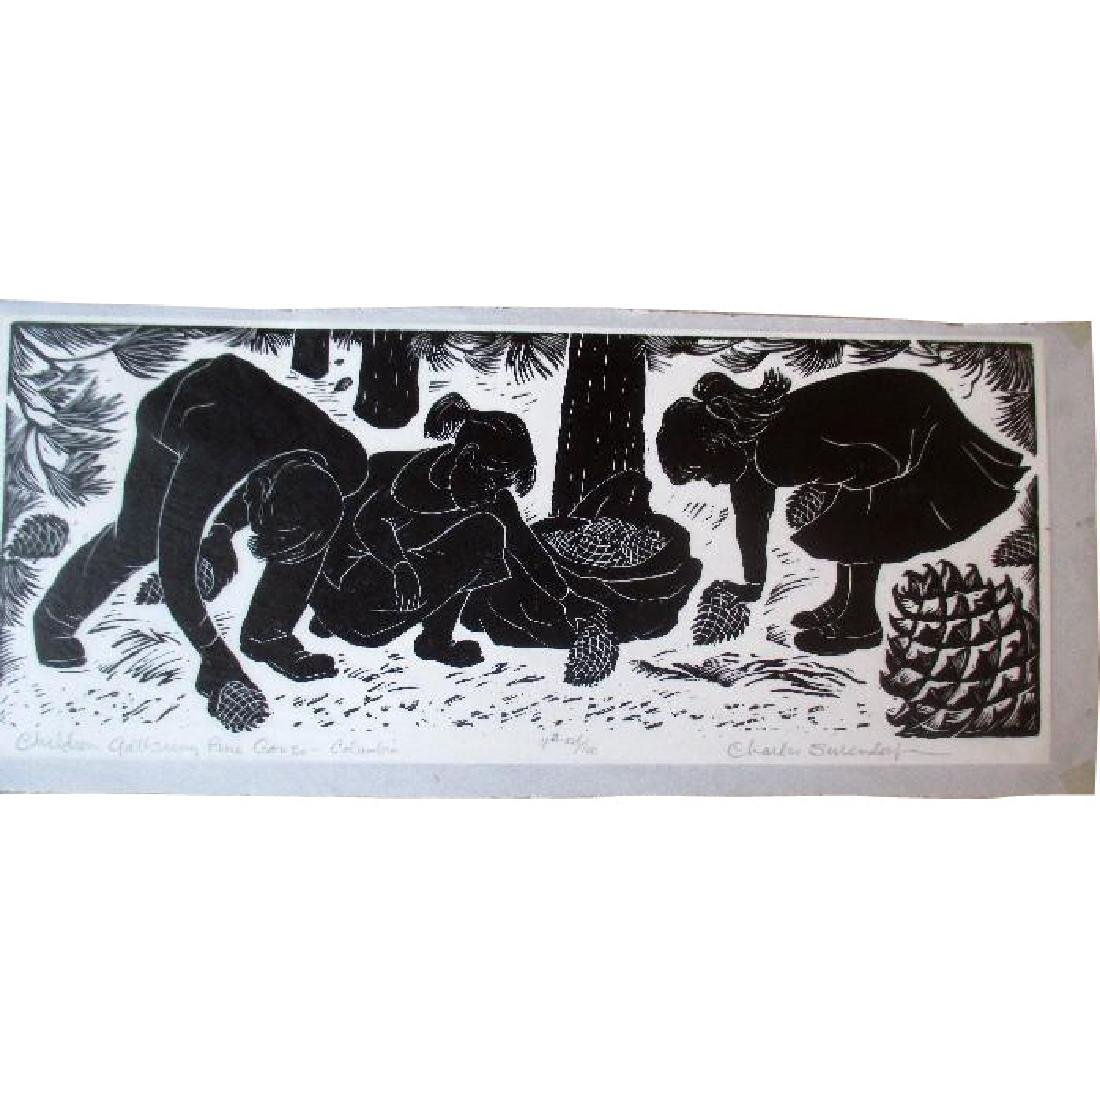 Signed / Numbered Linocut by Charles Surendorf -